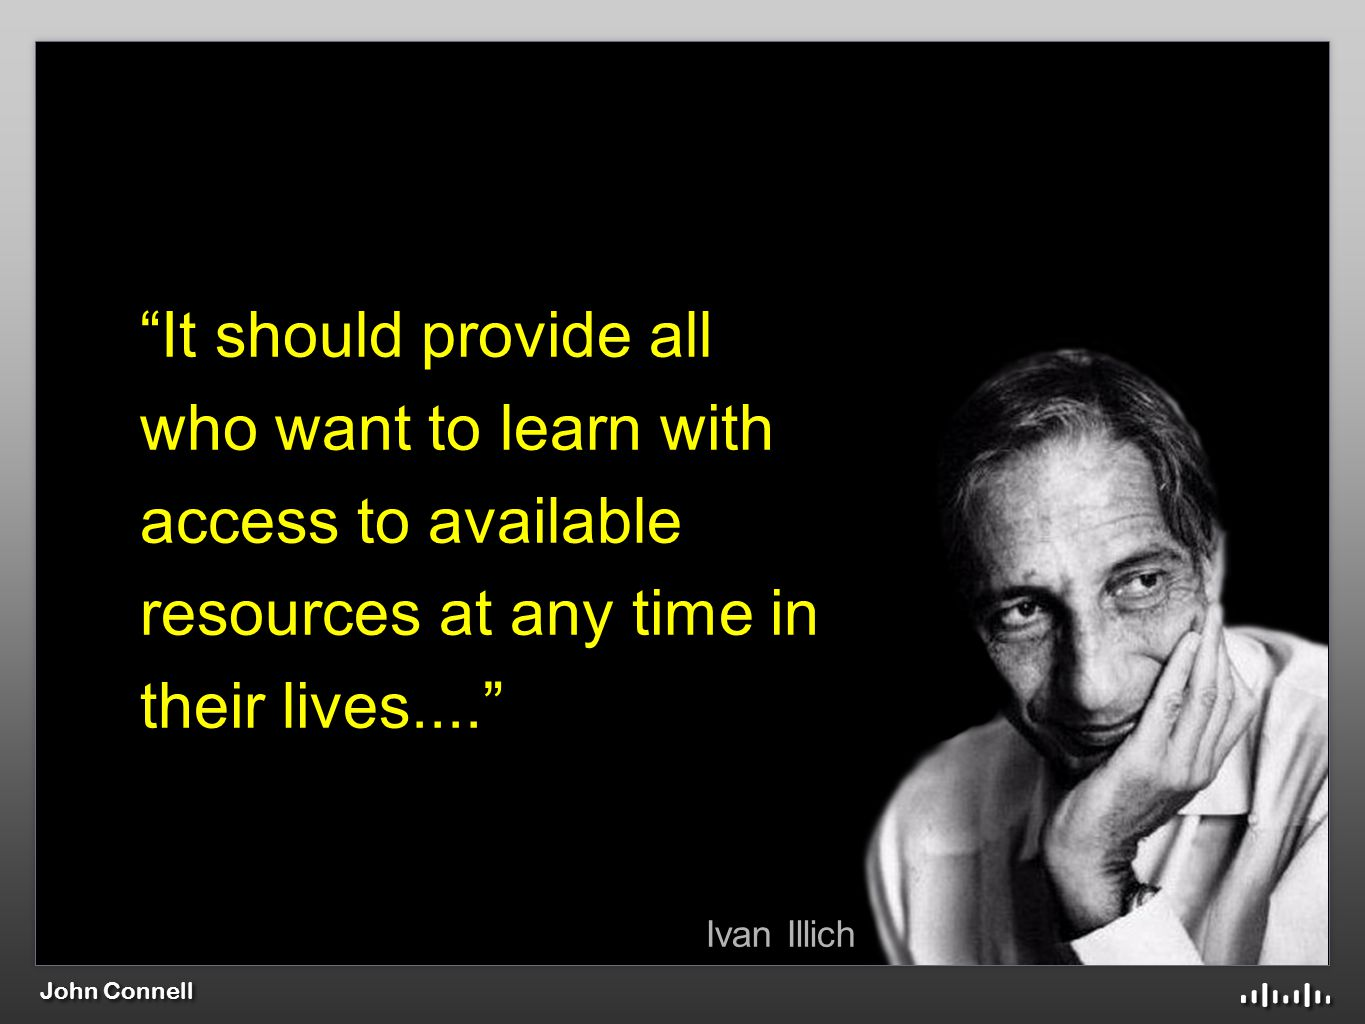 John Connell Ivan Illich It should provide all who want to learn with access to available resources at any time in their lives....